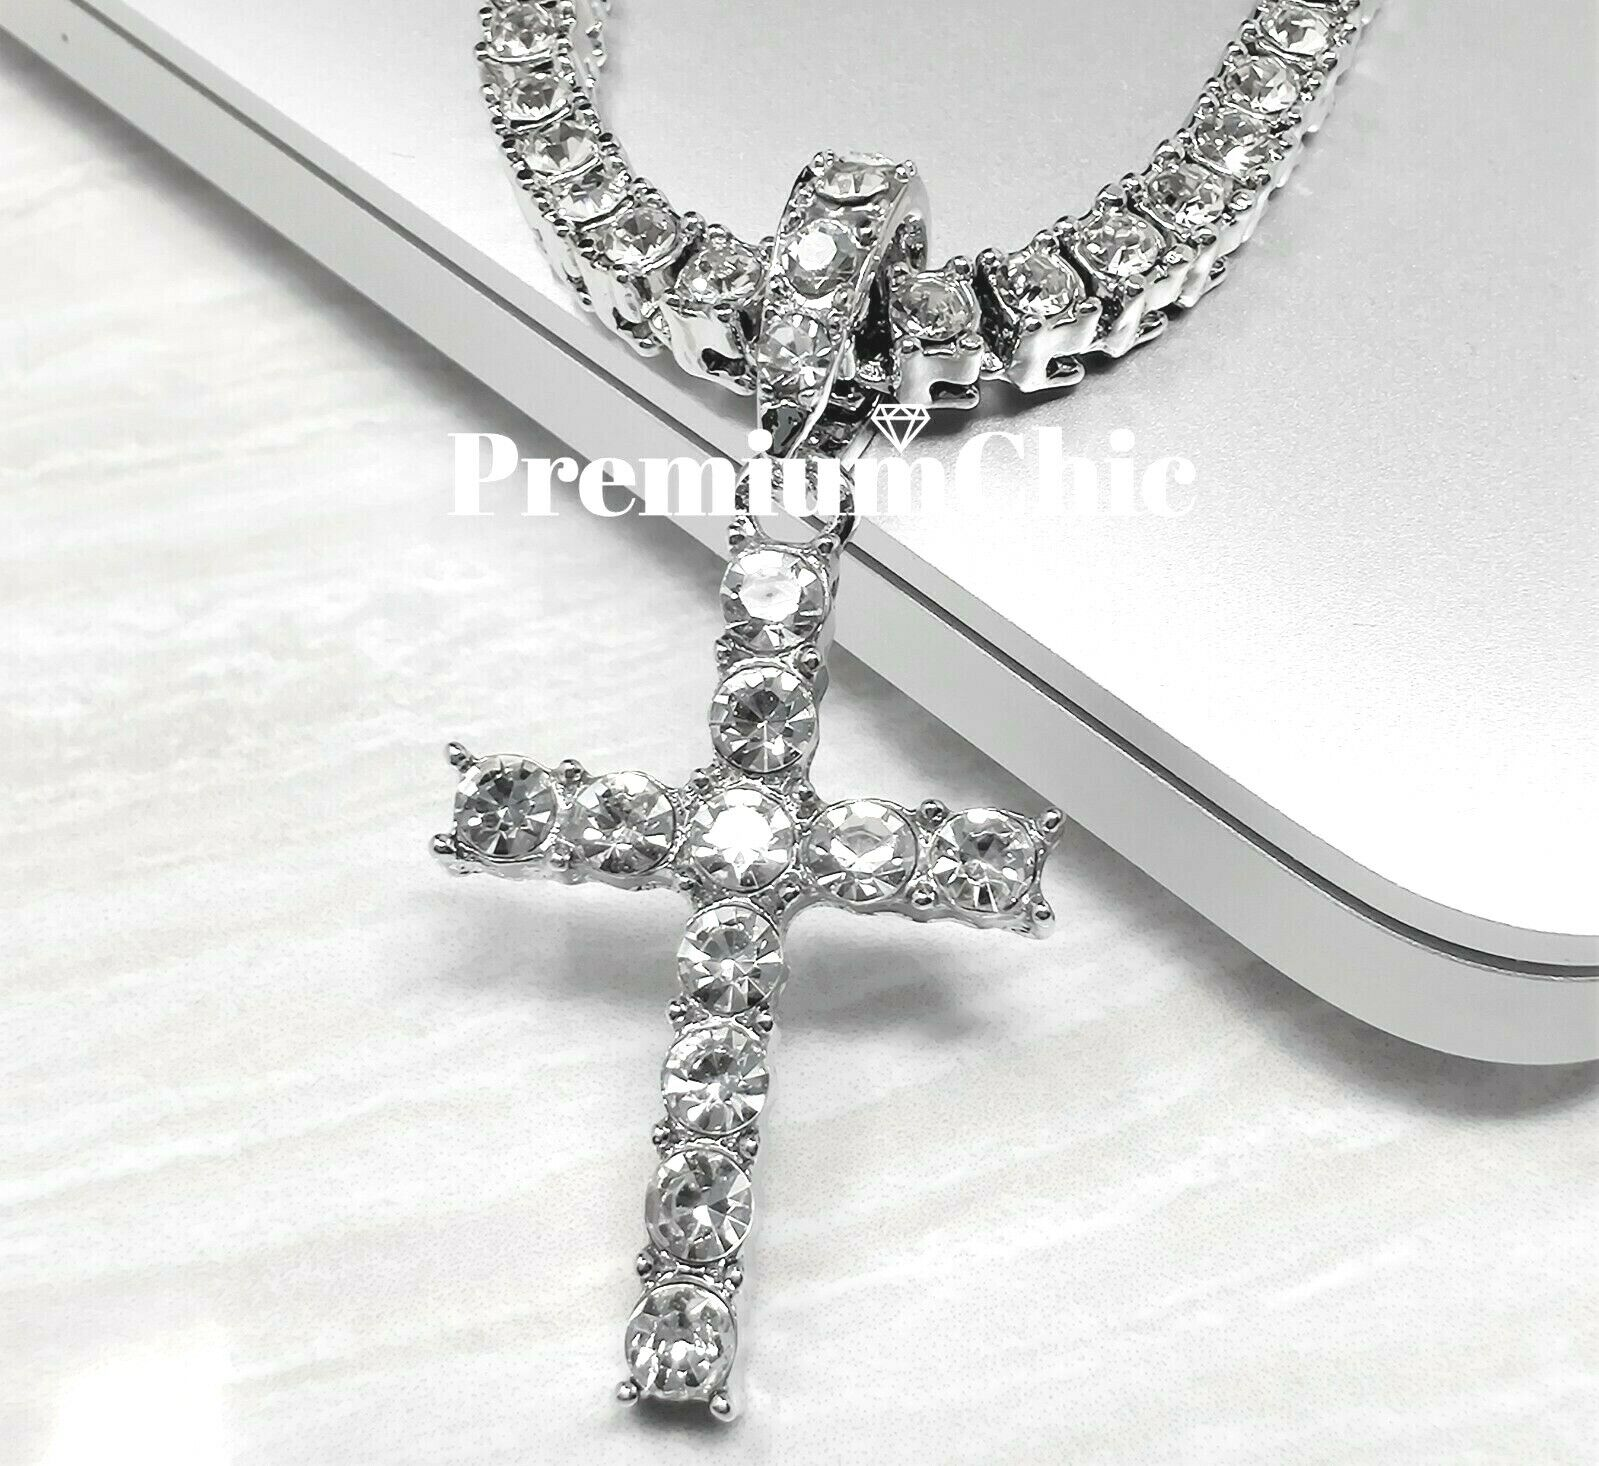 Jewellery - ICED Cross Pendant & Tennis Chain Choker Gold Silver Plated Mens HipHop Necklace